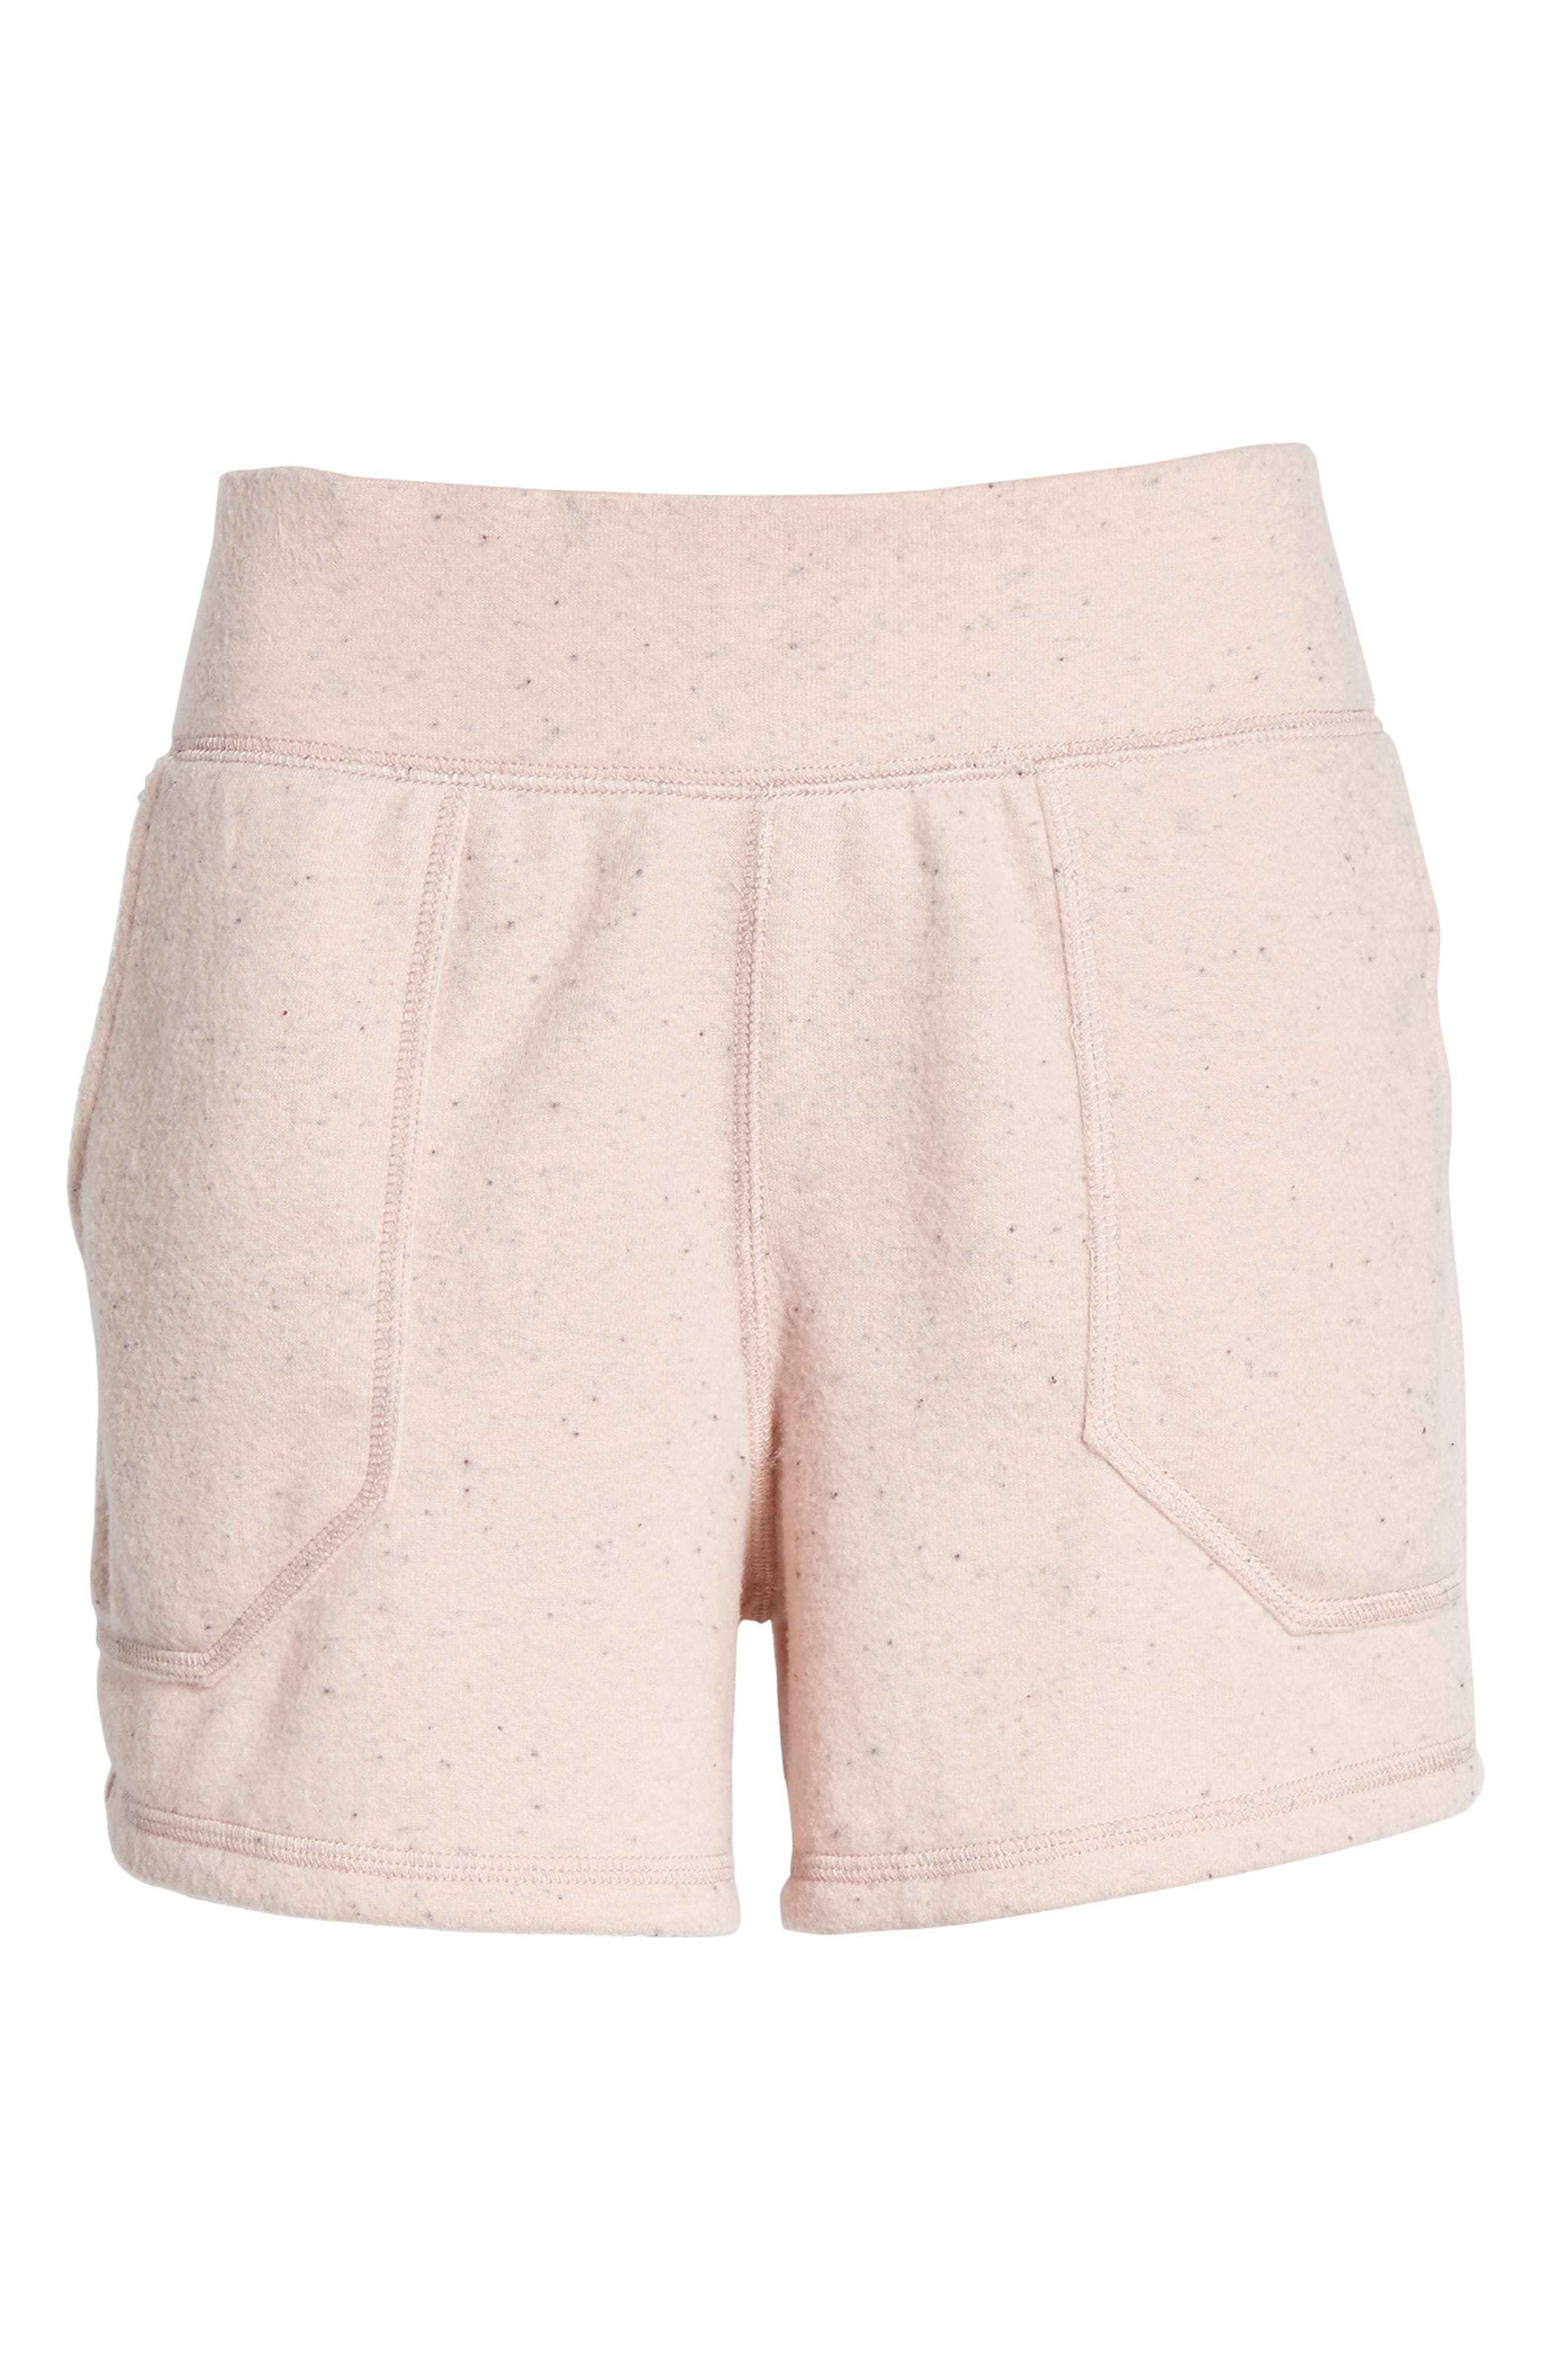 Off-Duty French Terry Shorts,                             Alternate thumbnail 6, color,                             680